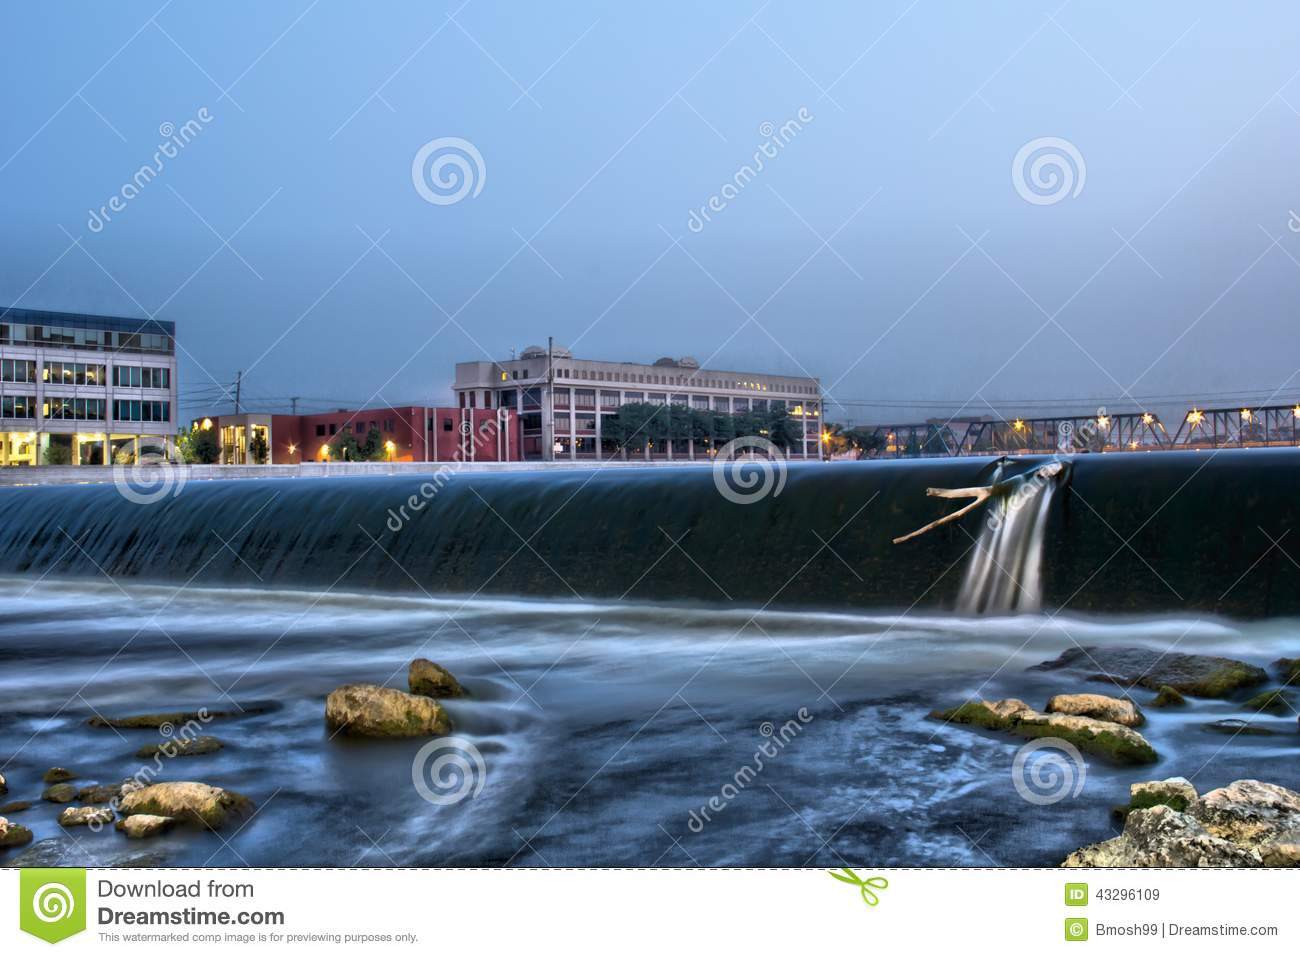 6th street dam and bridge in grand rapids stock image for Michigan fishing license prices